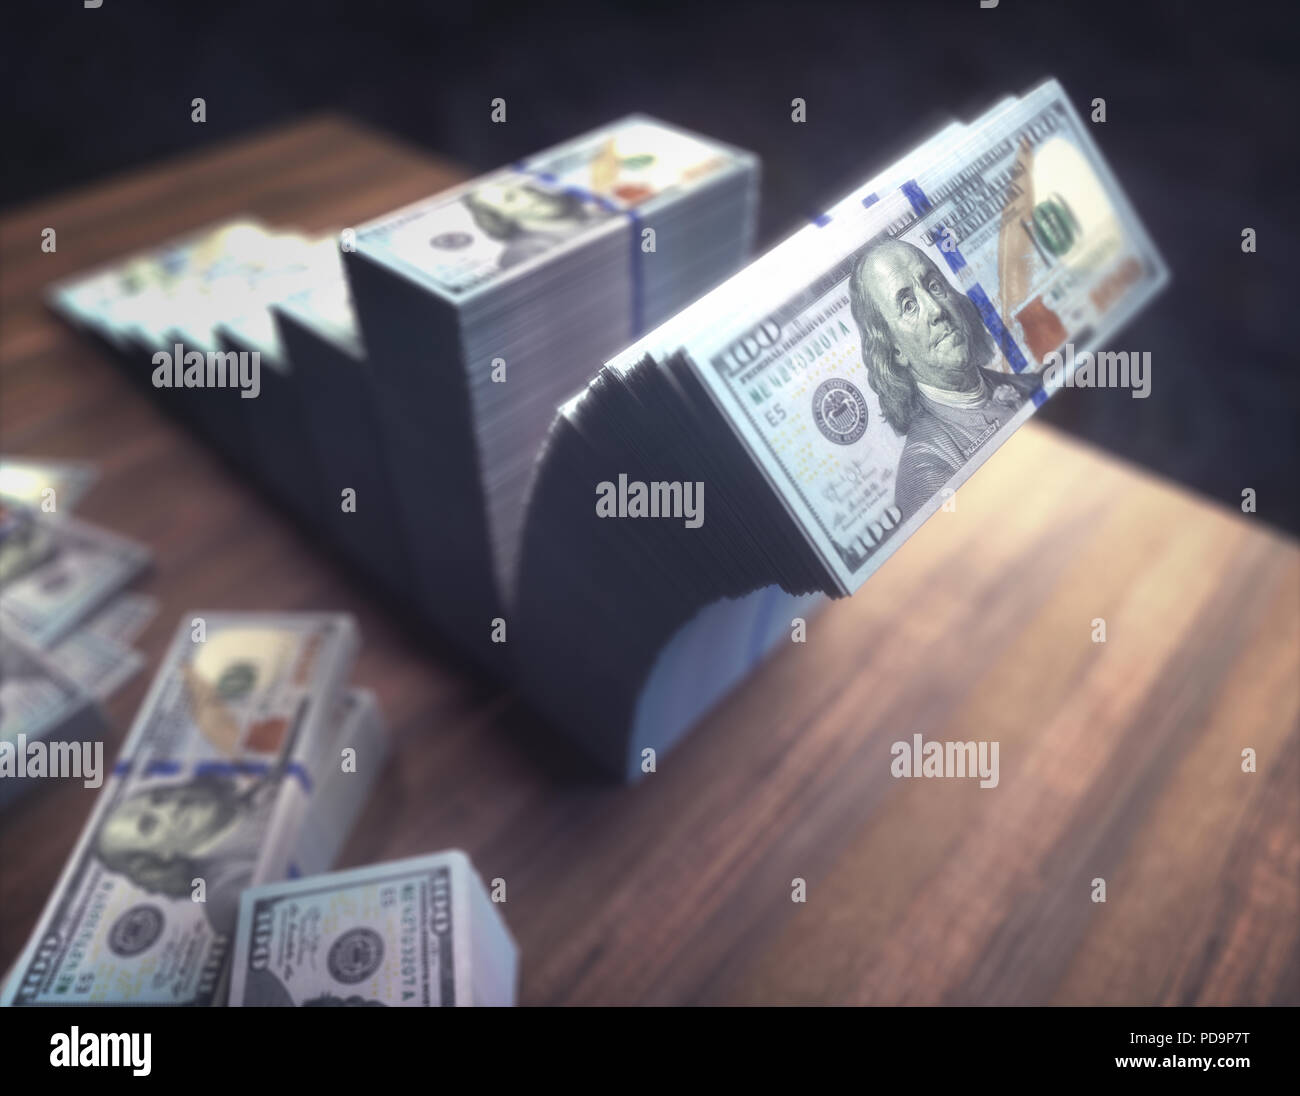 Stacks of dollars forming chart on the rise with the last pile crumbling. Concept of financial loss and stock market crash. - Stock Image